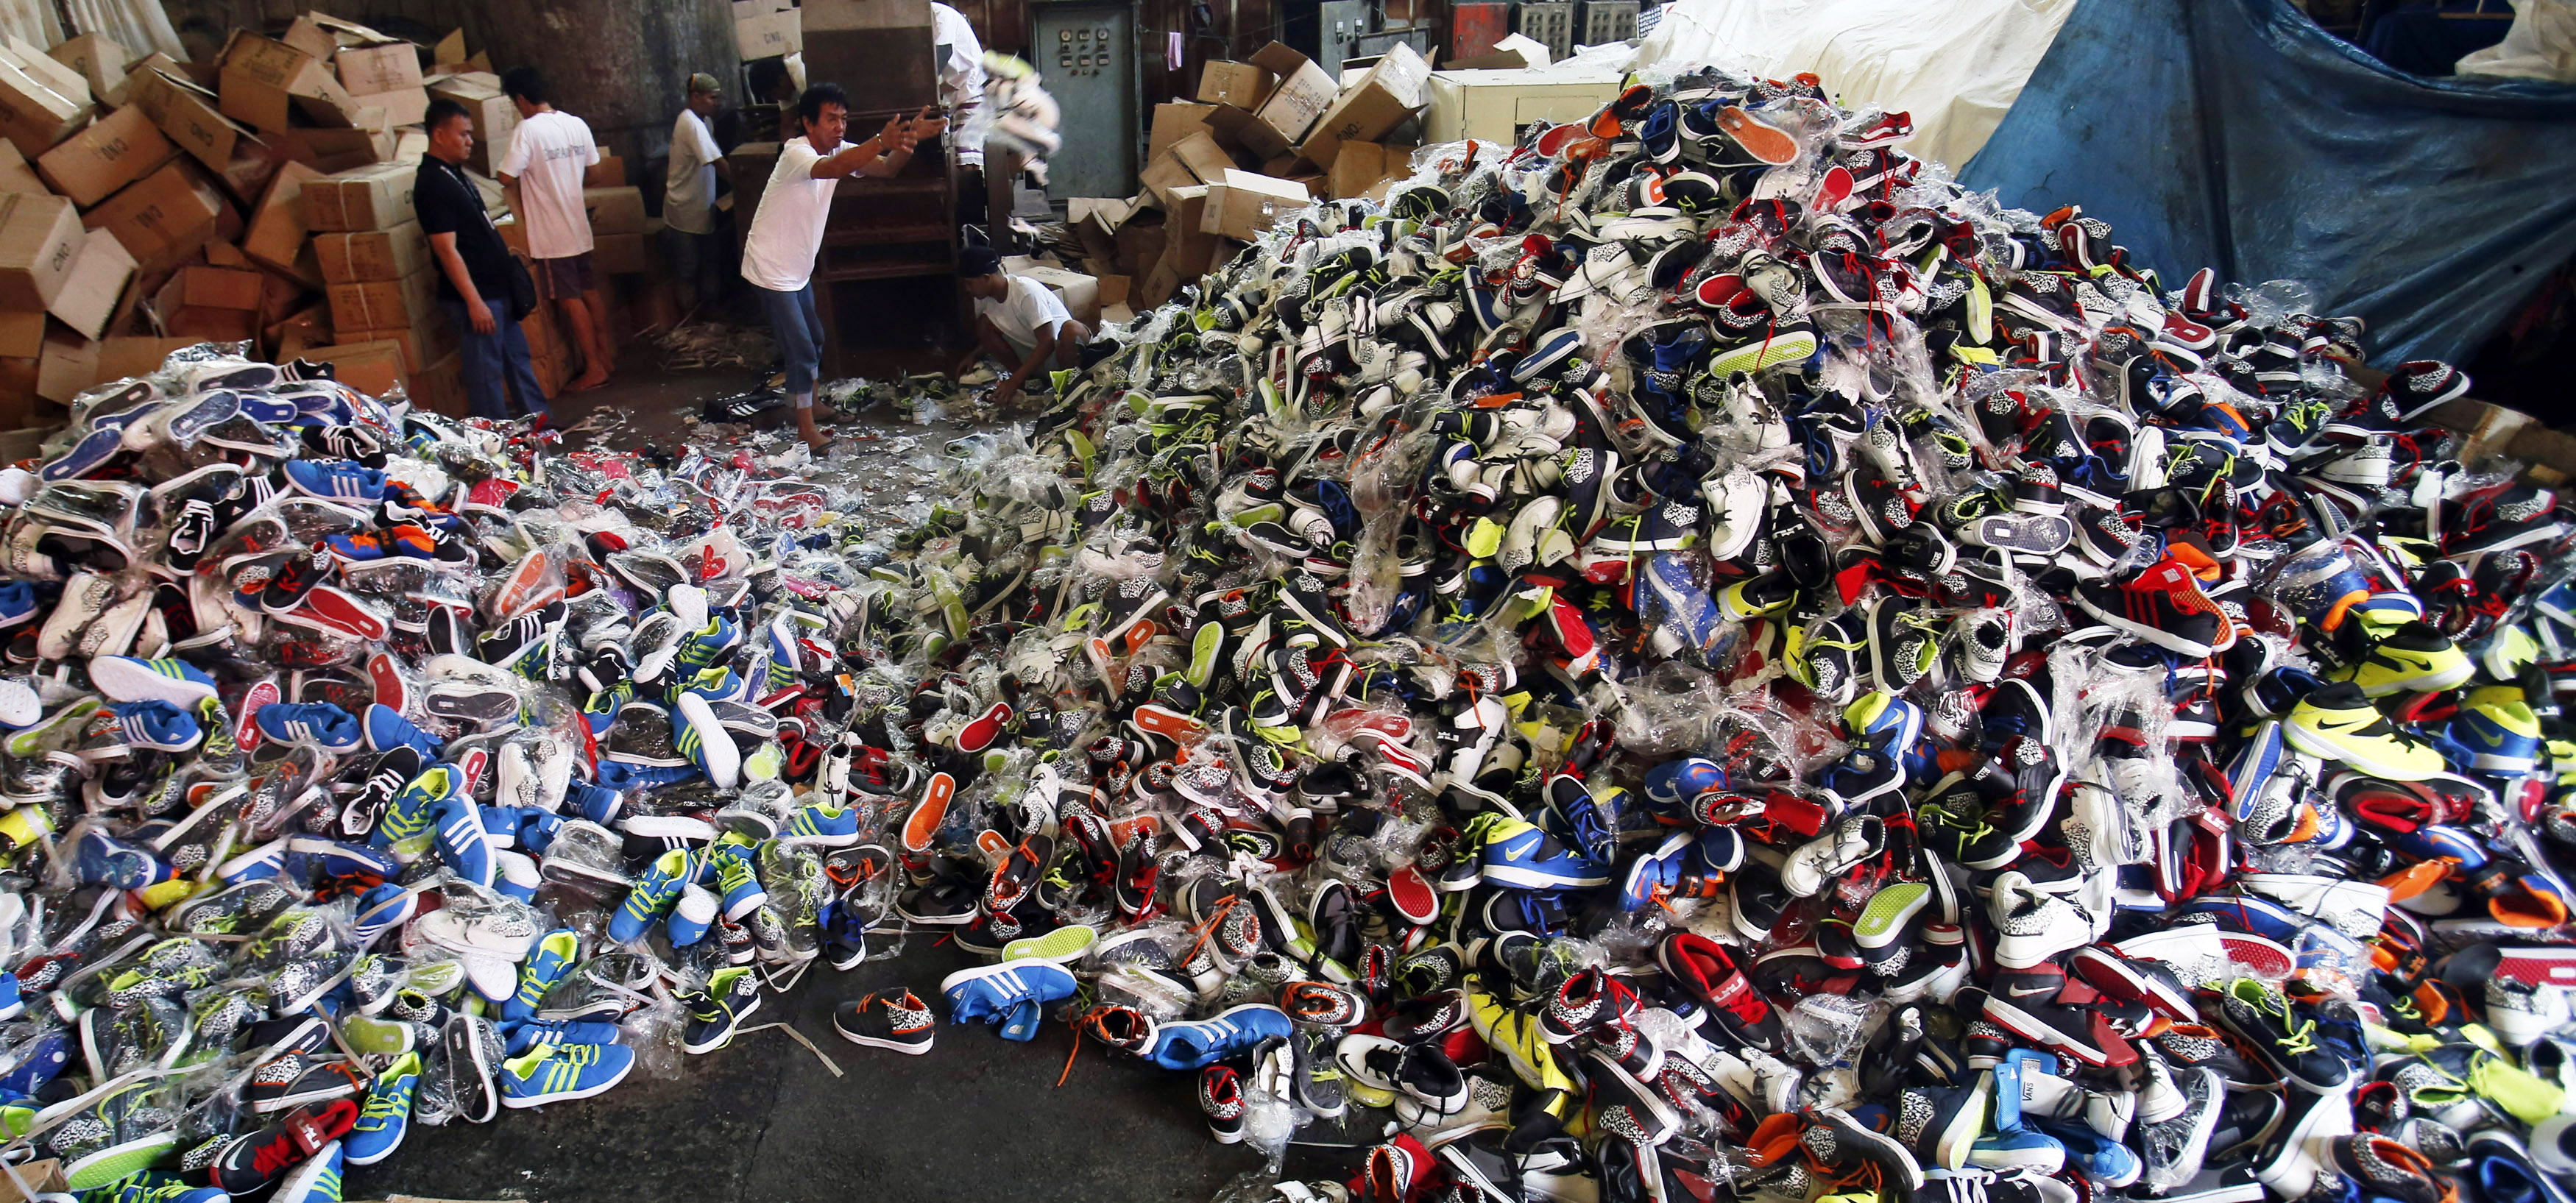 Government workers from the Bureau of Customs destroy counterfeit footwear products in Manila February 24, 2015. A government statement said over 150,000 pairs of fake shoes and slippers of various brands including Nike, Adidas, Converse, Sketchers, North Face, Leaveland, Merrell, Lacoste, Vans, Havaianas and Ipanema worth PHP 50 million ($1.13 million), which were smuggled from China, were destroyed at a government warehouse in Manila on Tuesday.